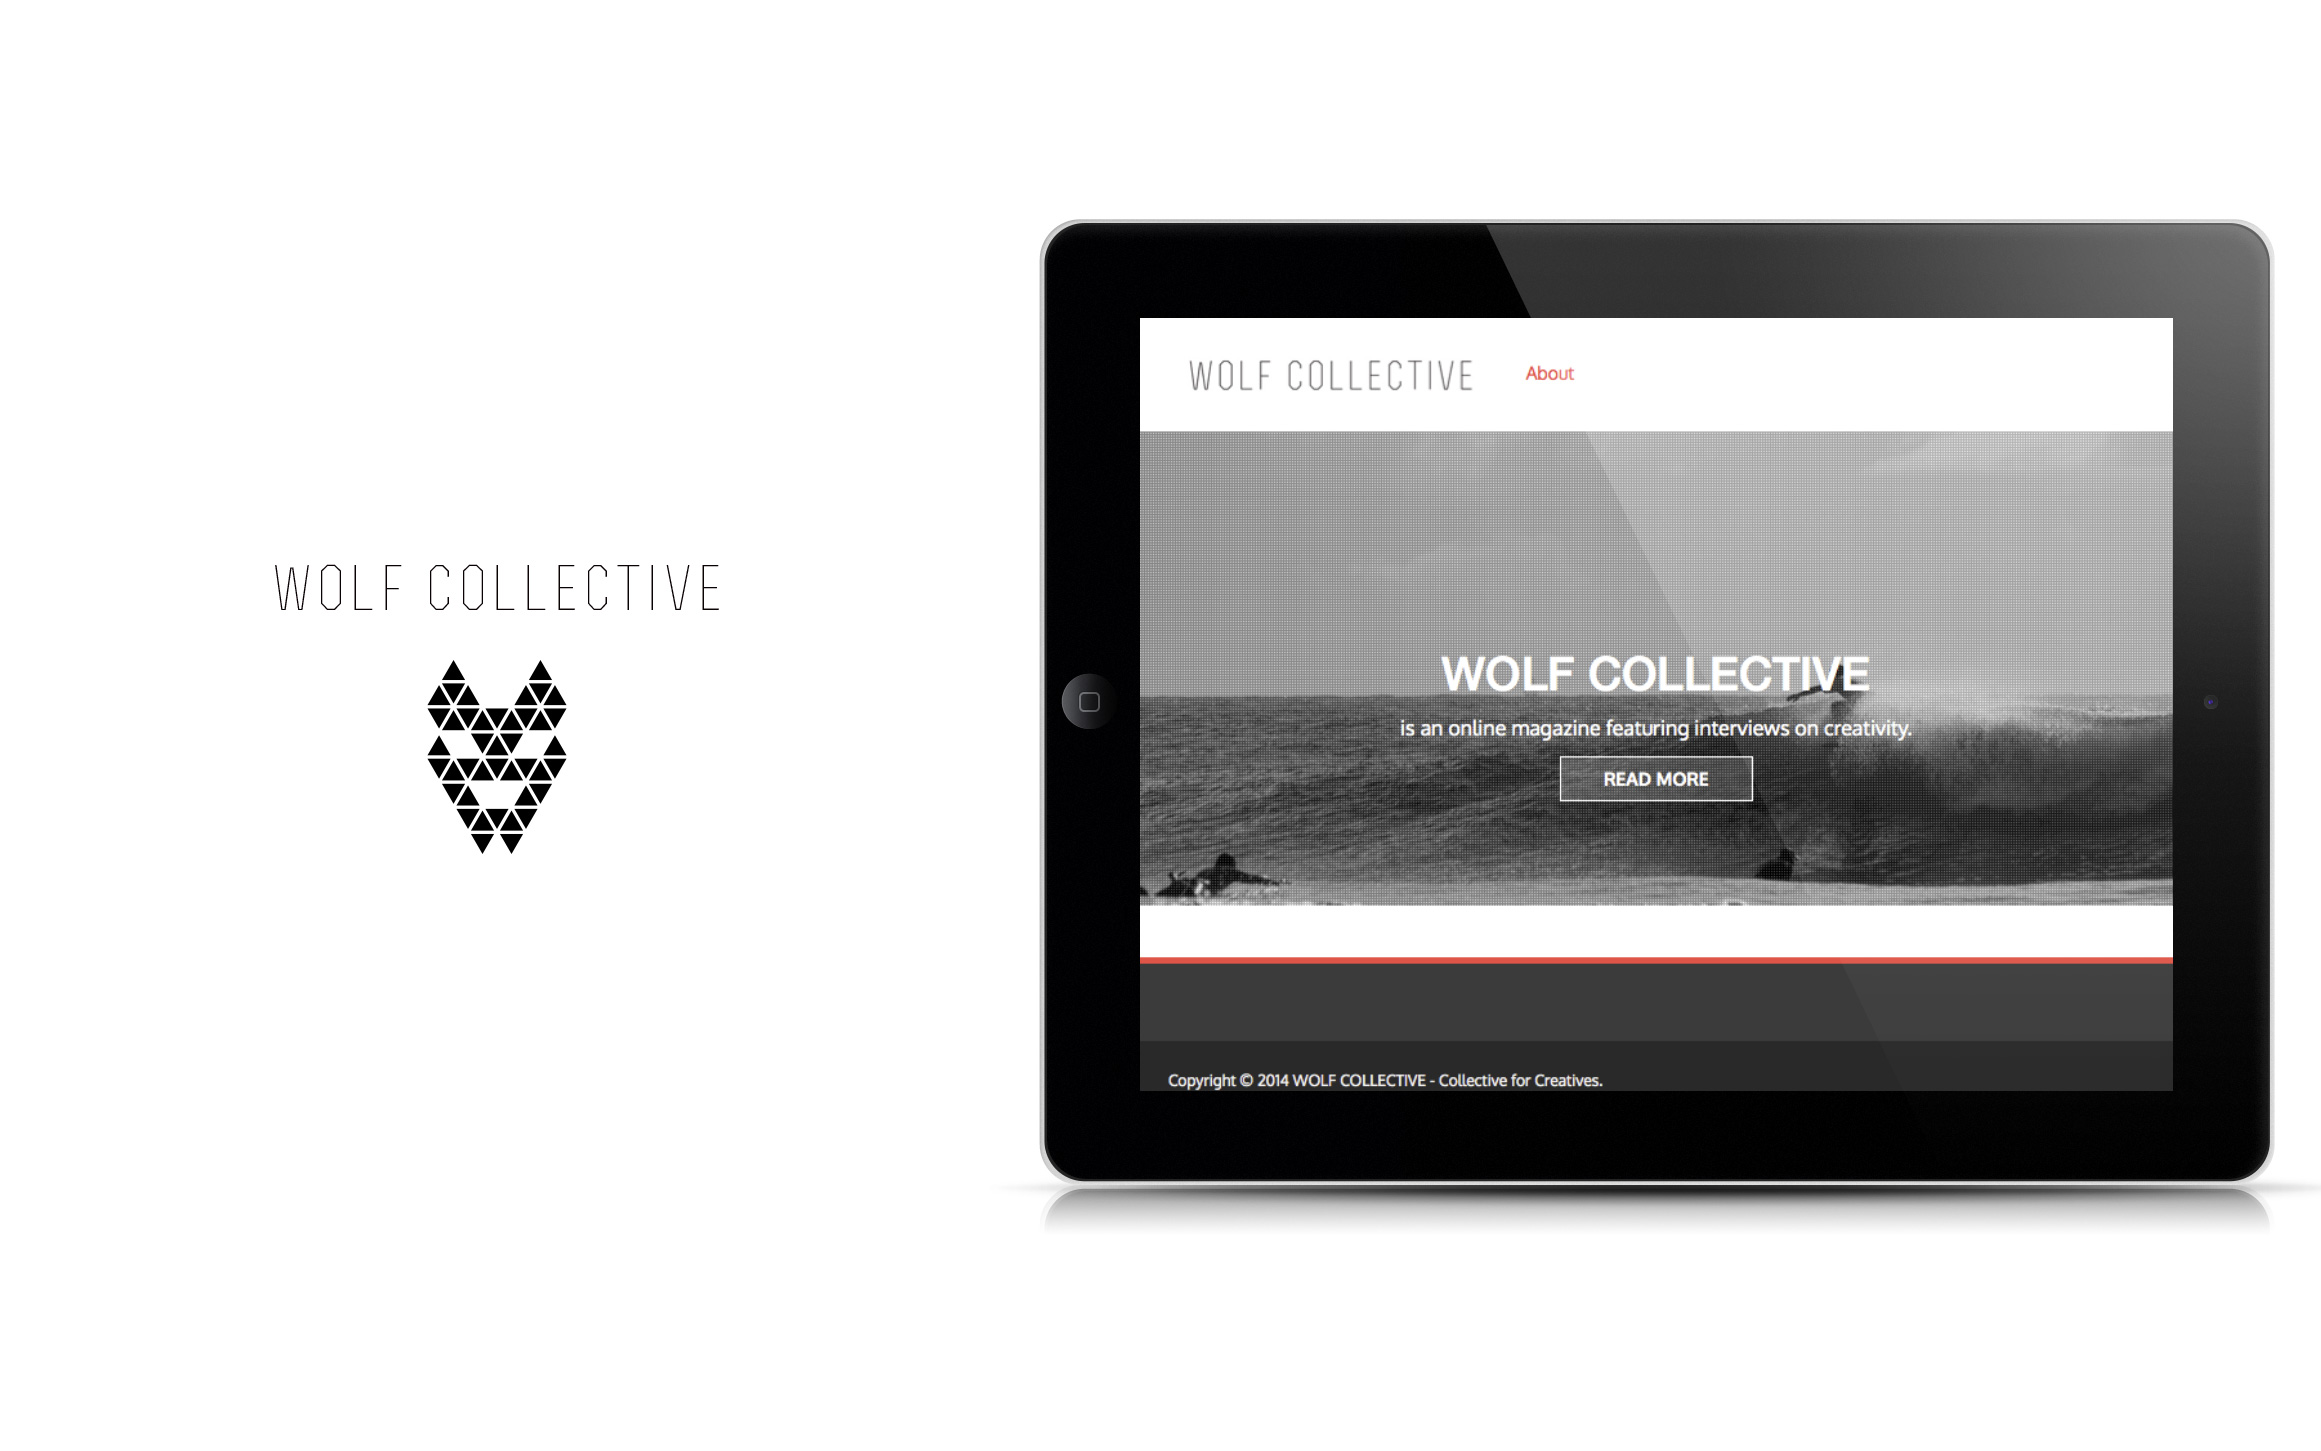 wolfcollective.com